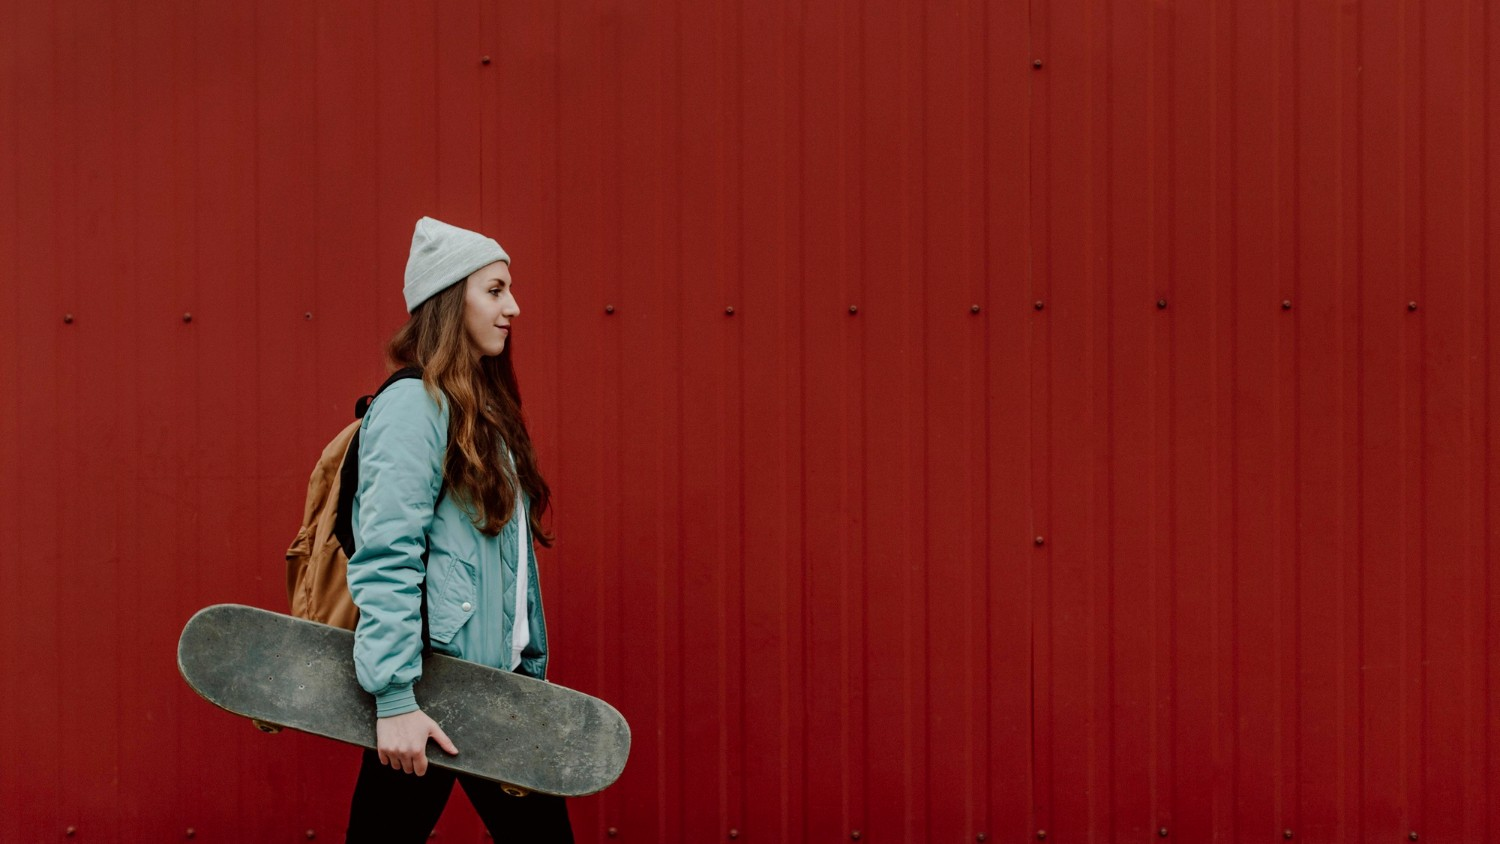 skateboarding is one of the solo sports seeing a boom during the pandemic